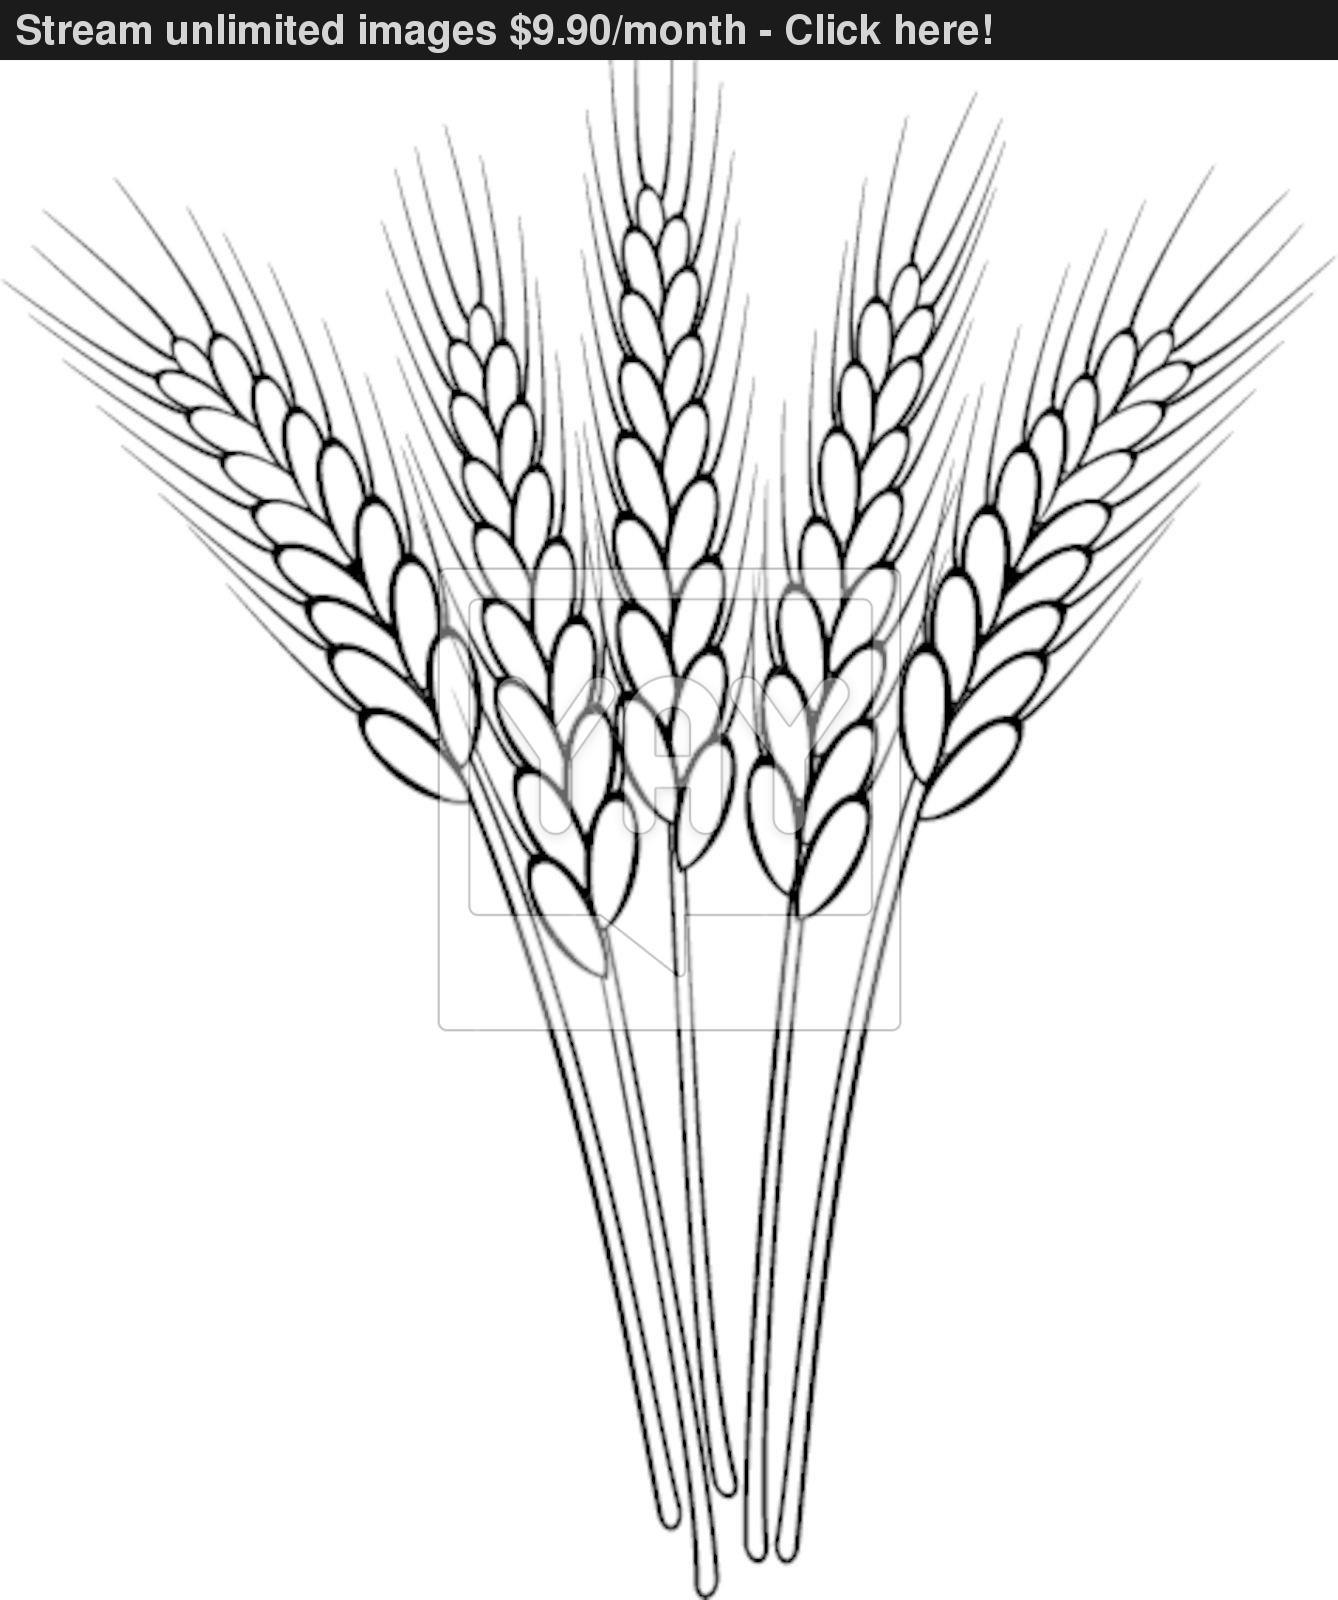 Wheat clipart black and white 5 » Clipart Station.